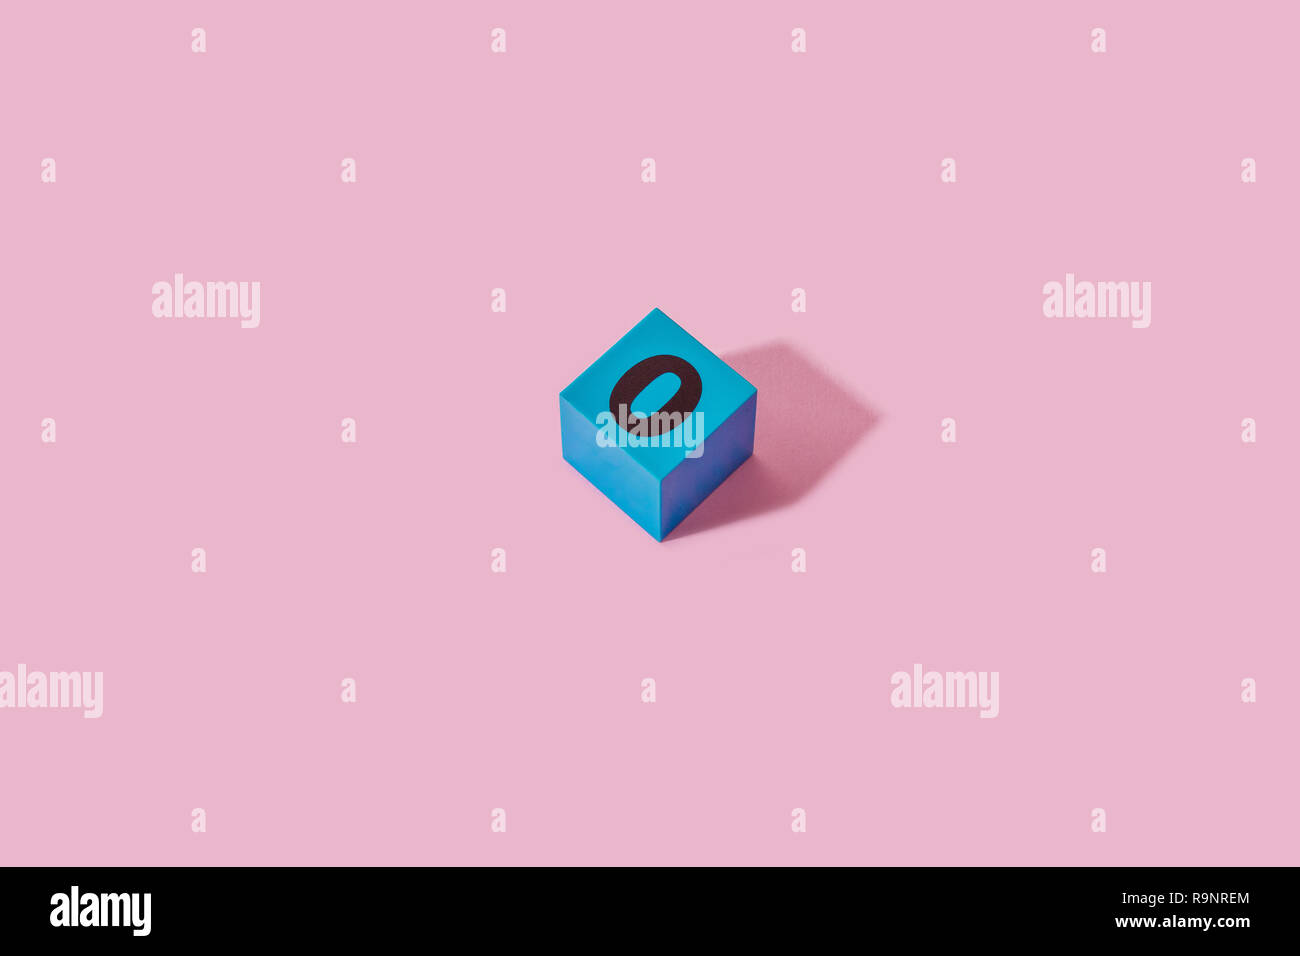 Blue Zero Cube Pattern. Pink background. - Stock Image